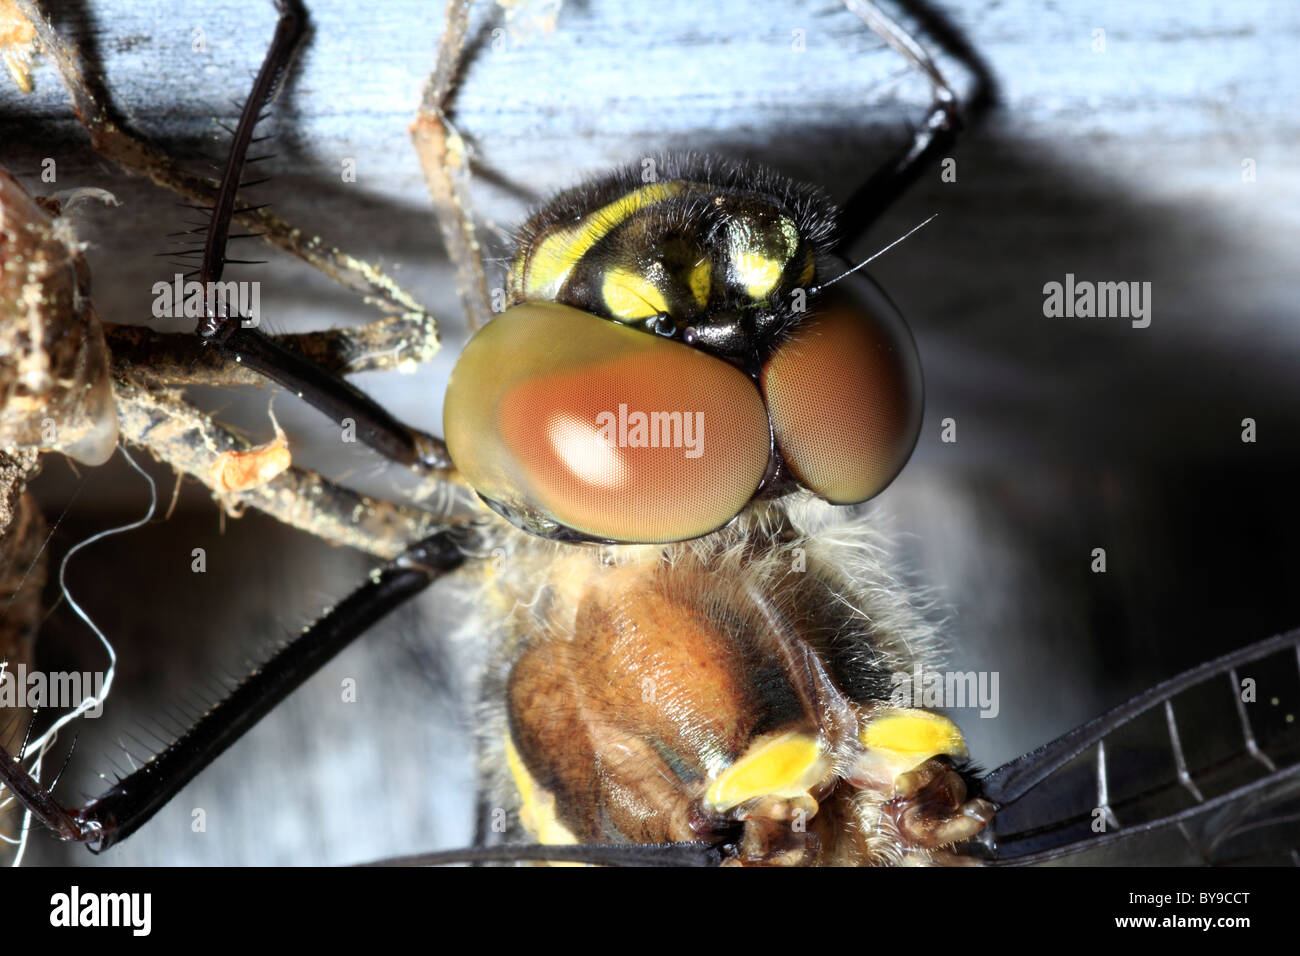 Compound eyes on a dragonfly - Stock Image